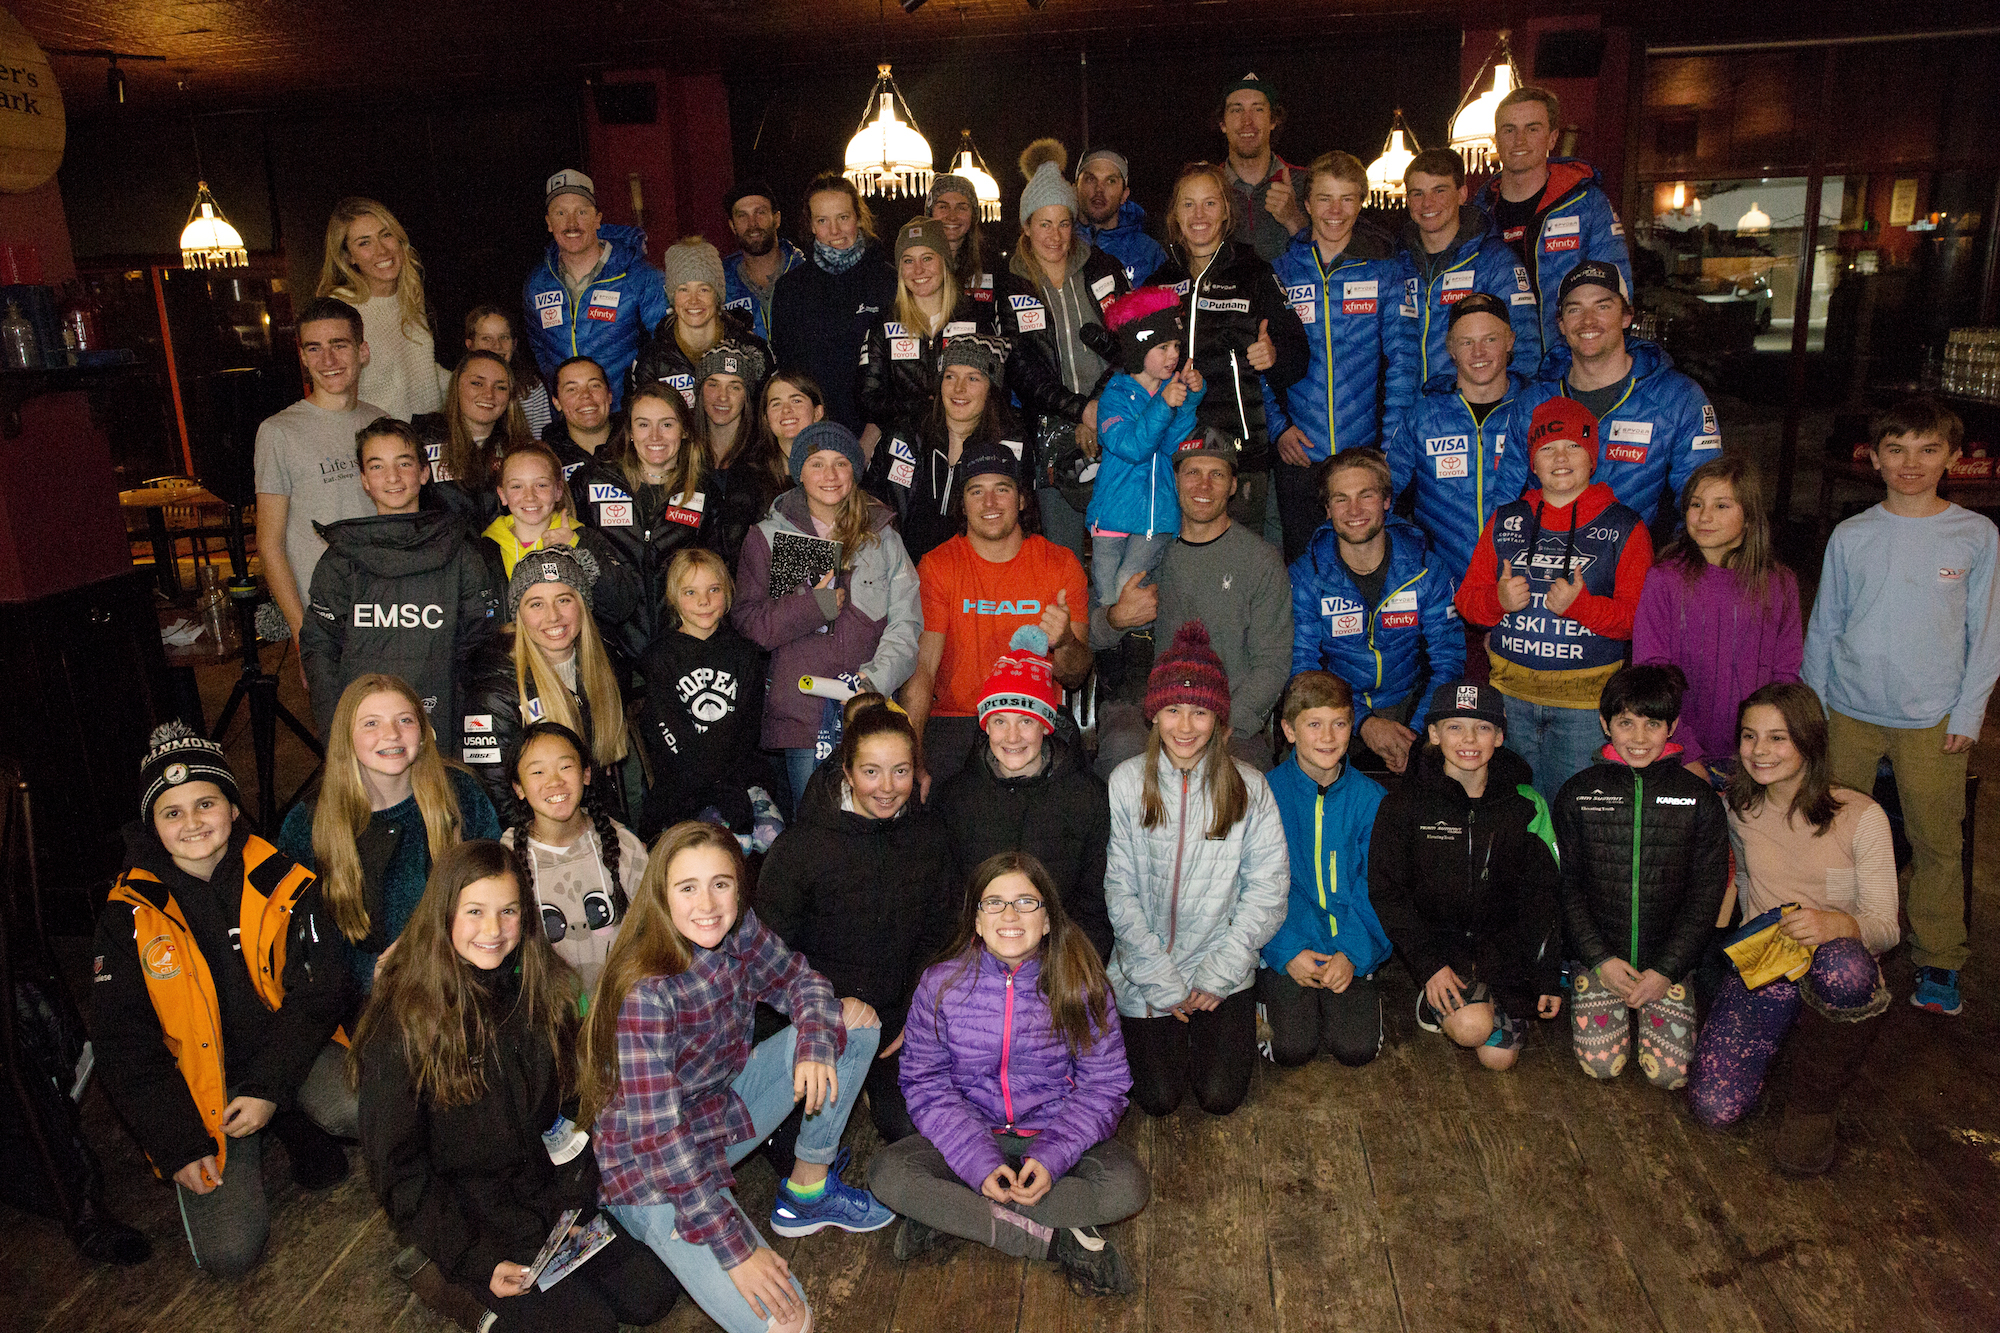 U.S. Ski Team at Copper Mountain